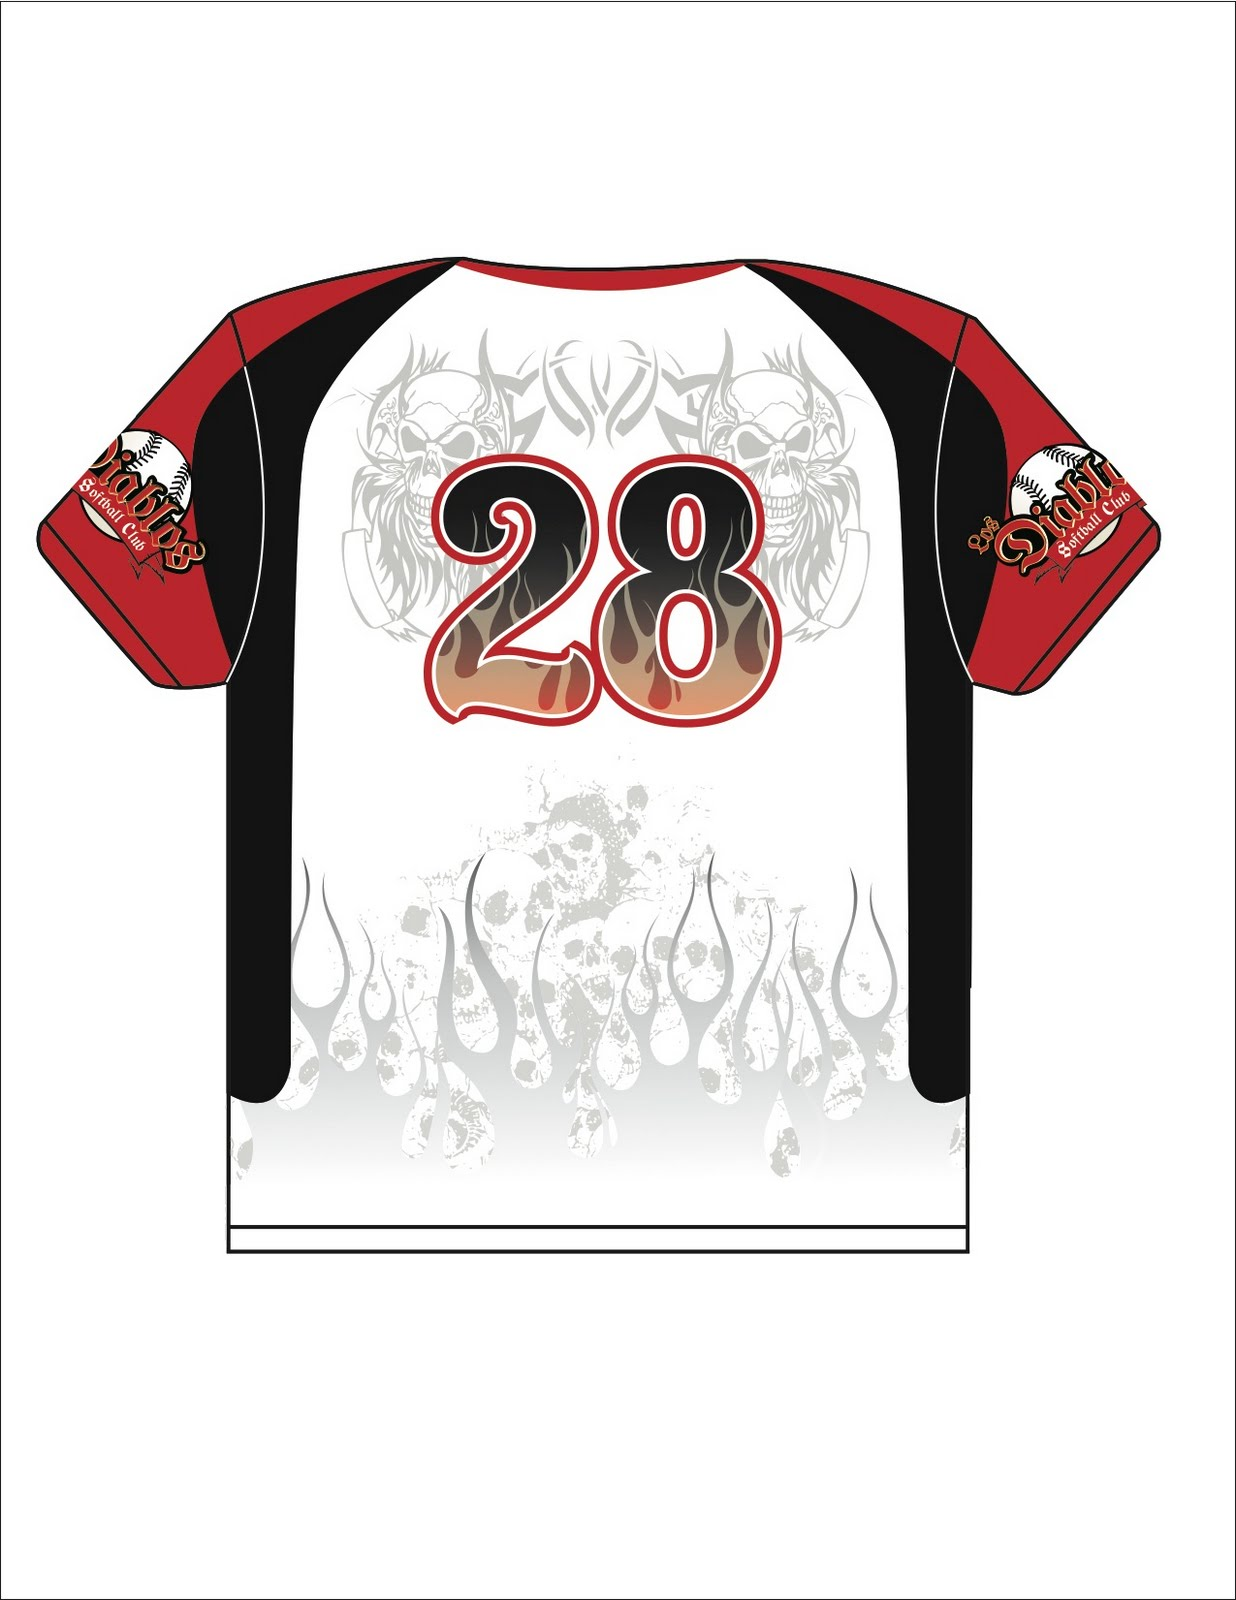 Softball jersey design template alex herrera graphic for Softball uniform design templates